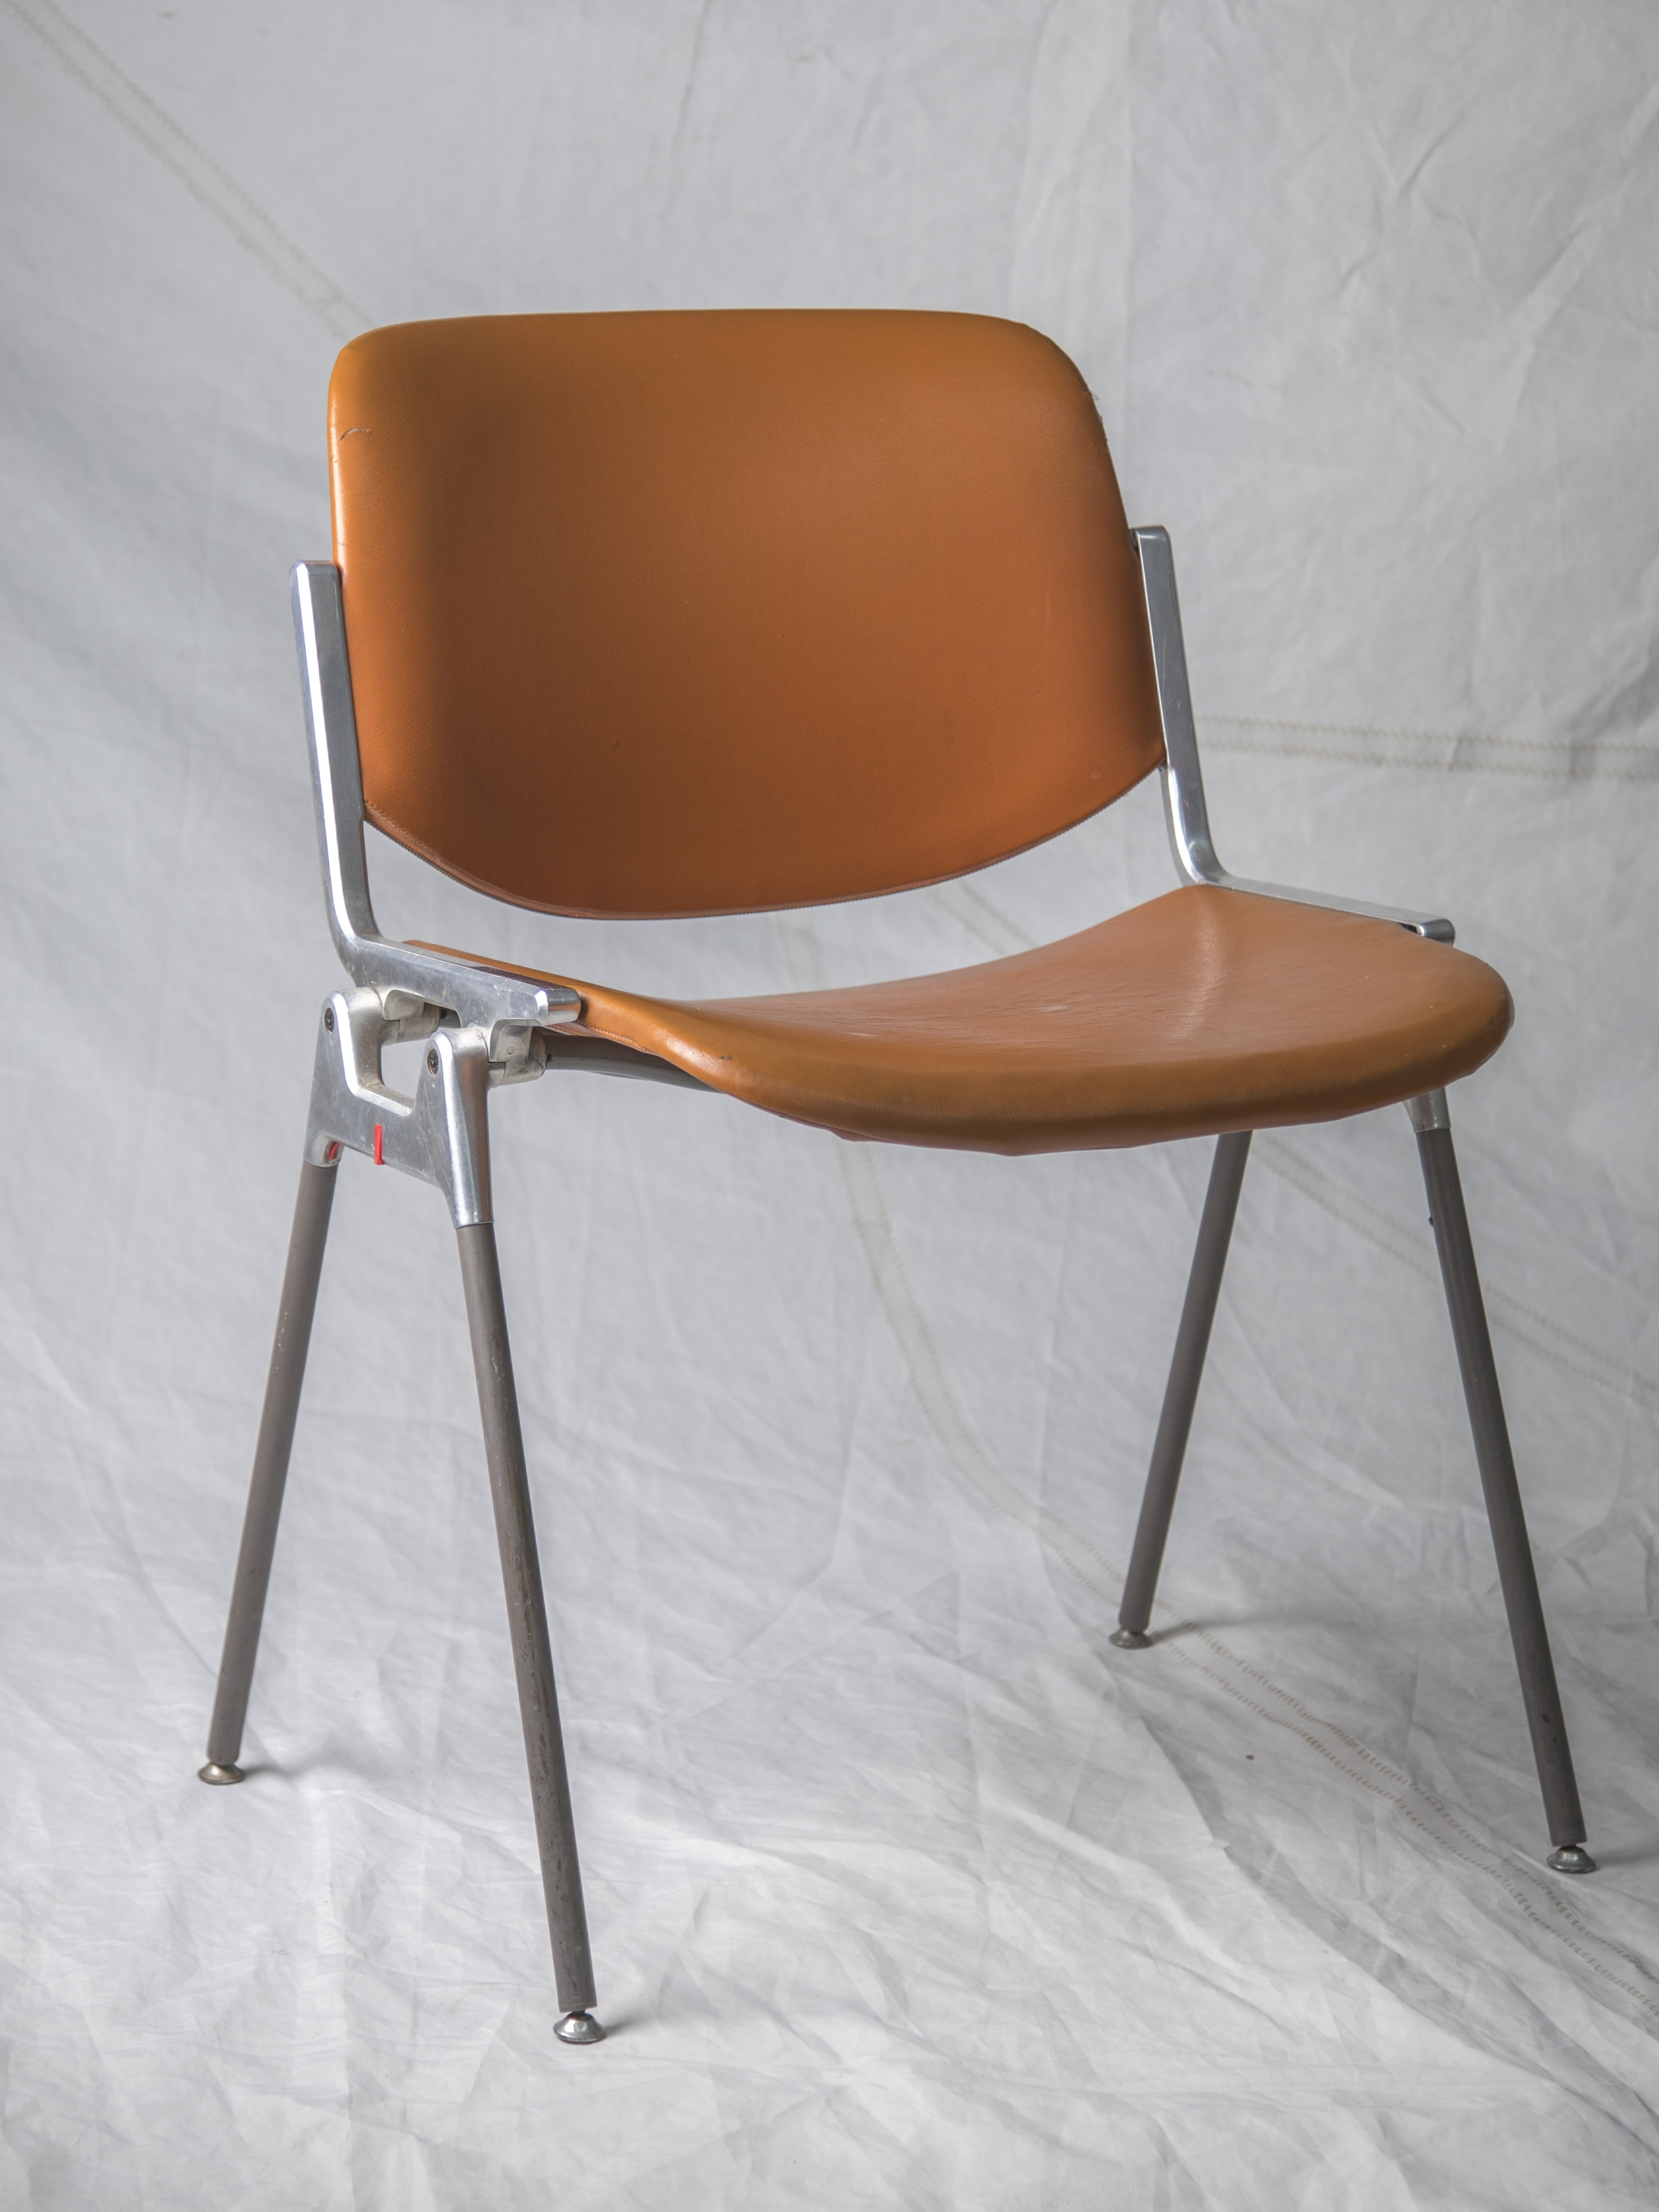 CH063  Giancarlo Piretti for Castelli DSC106 chair  $150/week